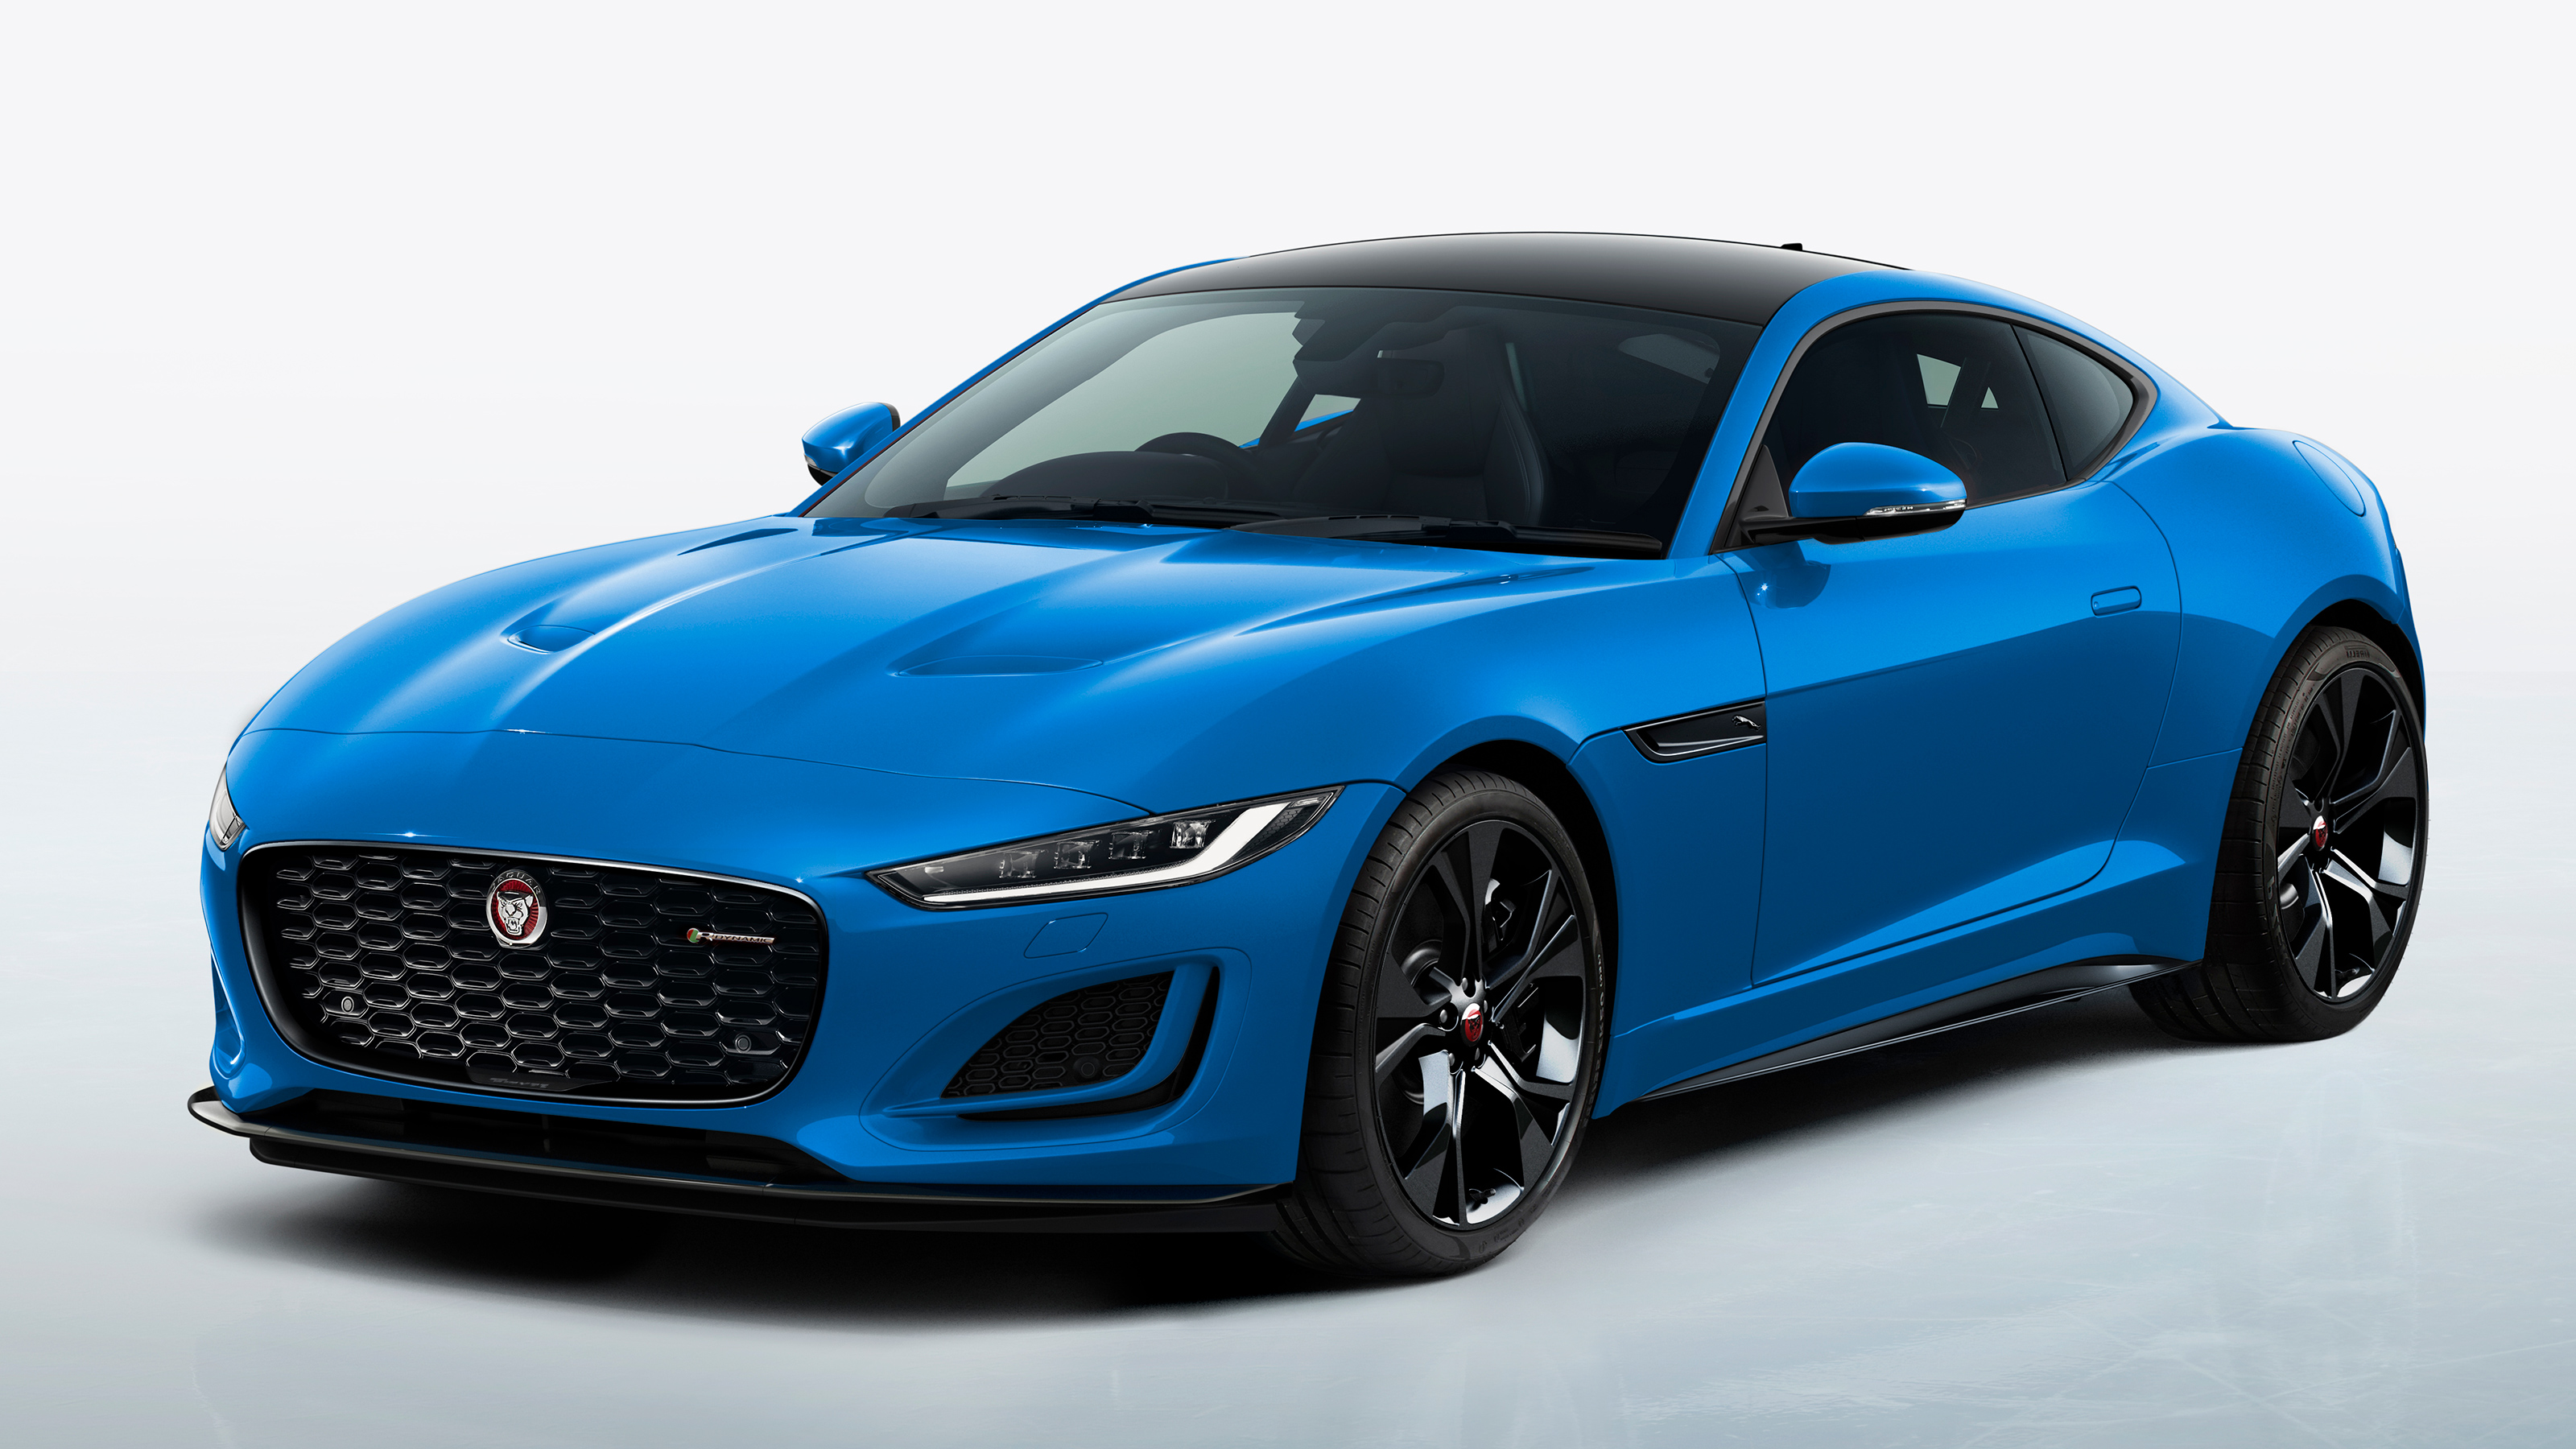 New limited Jaguar F-Type Reims Edition unveiled | Auto Express